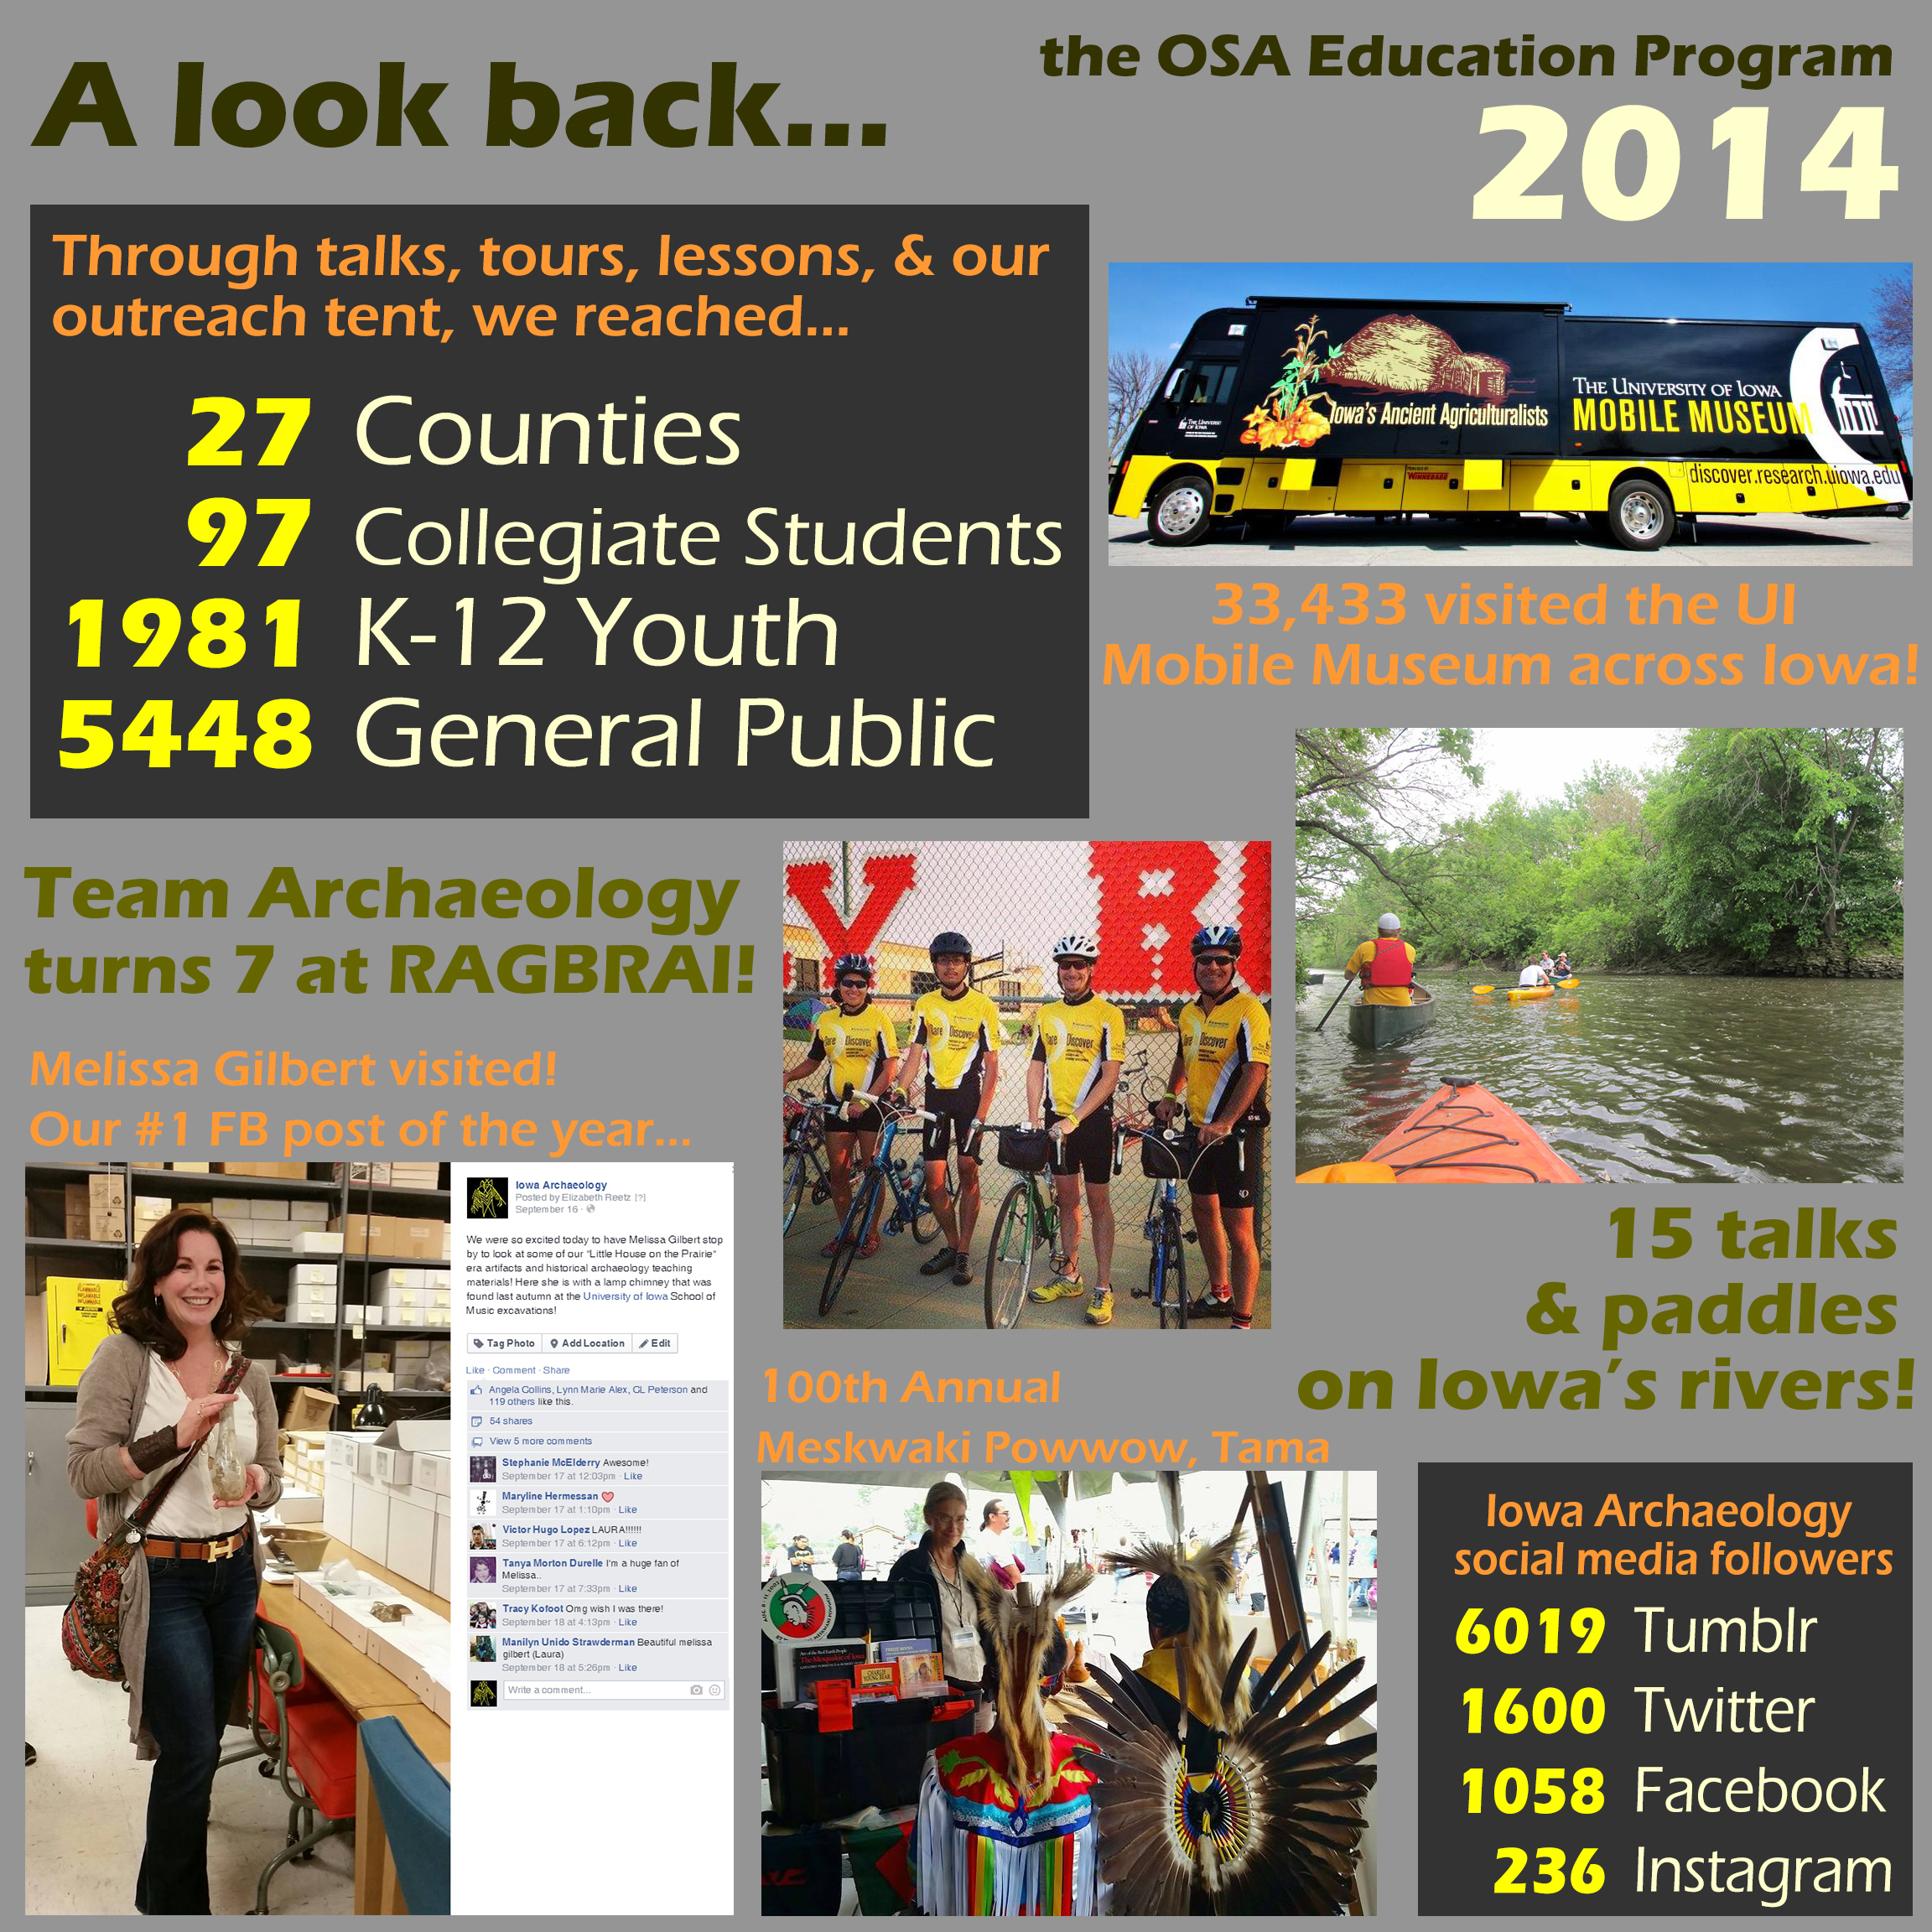 OSA Education Program 2014 accomplishments